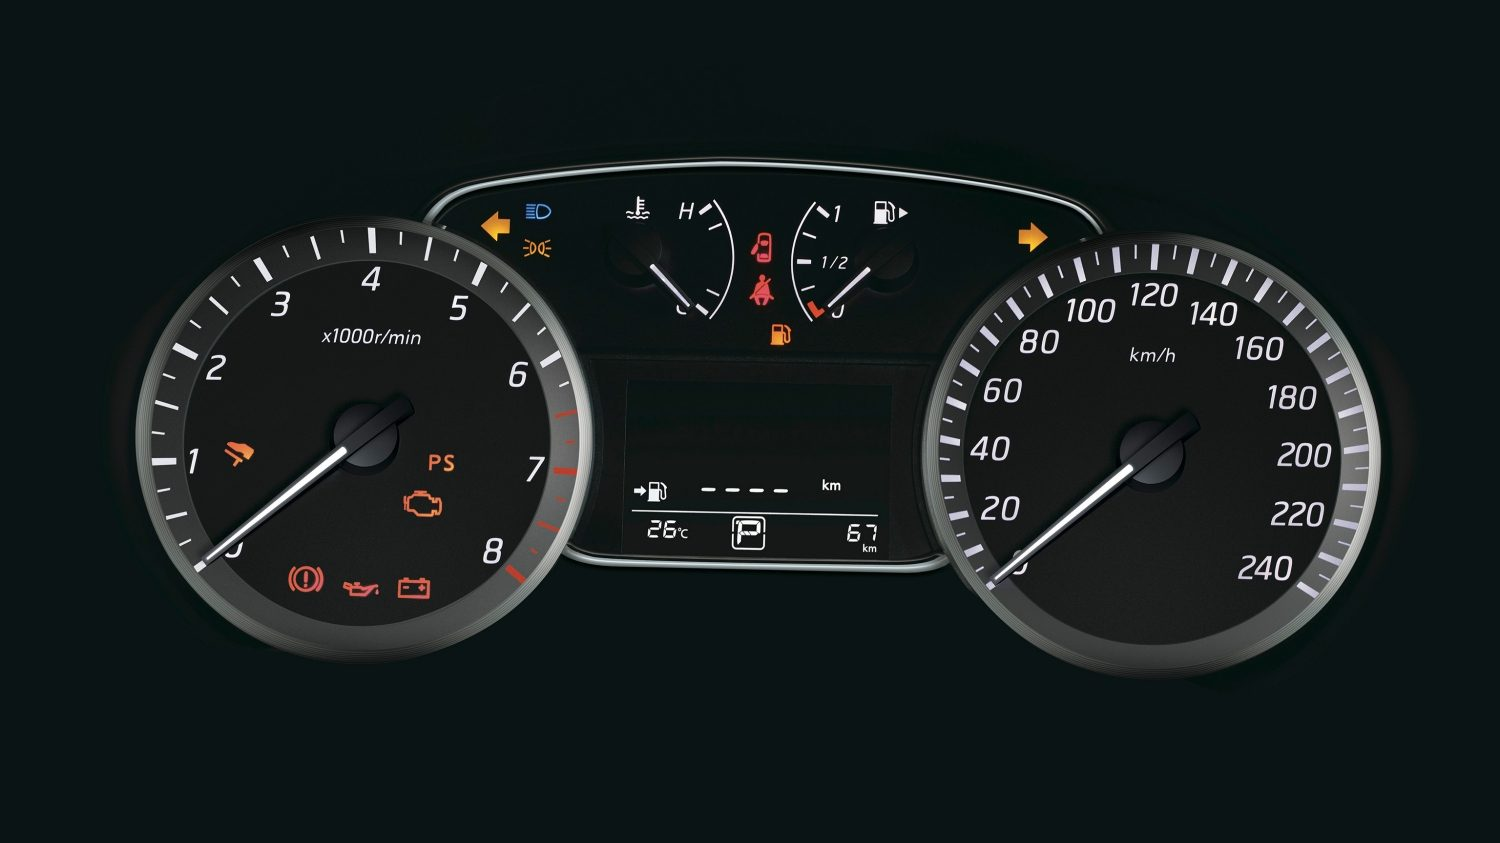 Speedometer and Driving Aids Display